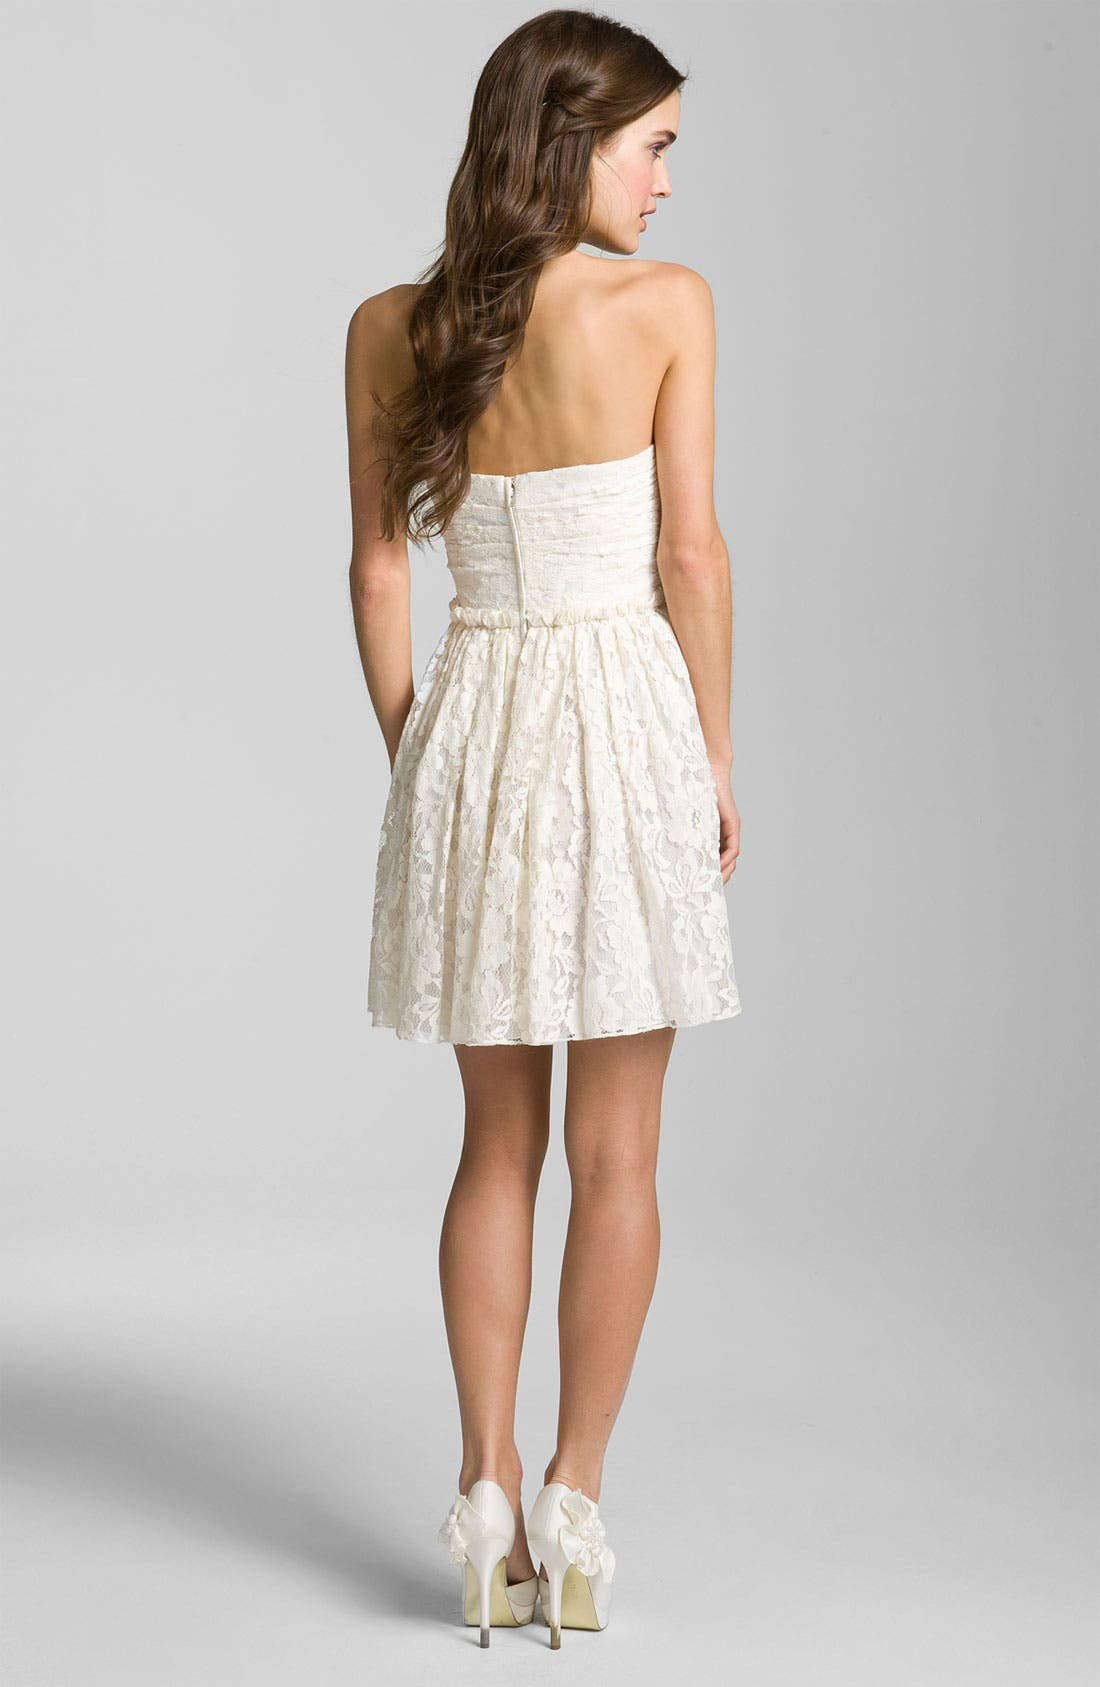 Sweetheart Lace Dress,                             Alternate thumbnail 2, color,                             Ivory